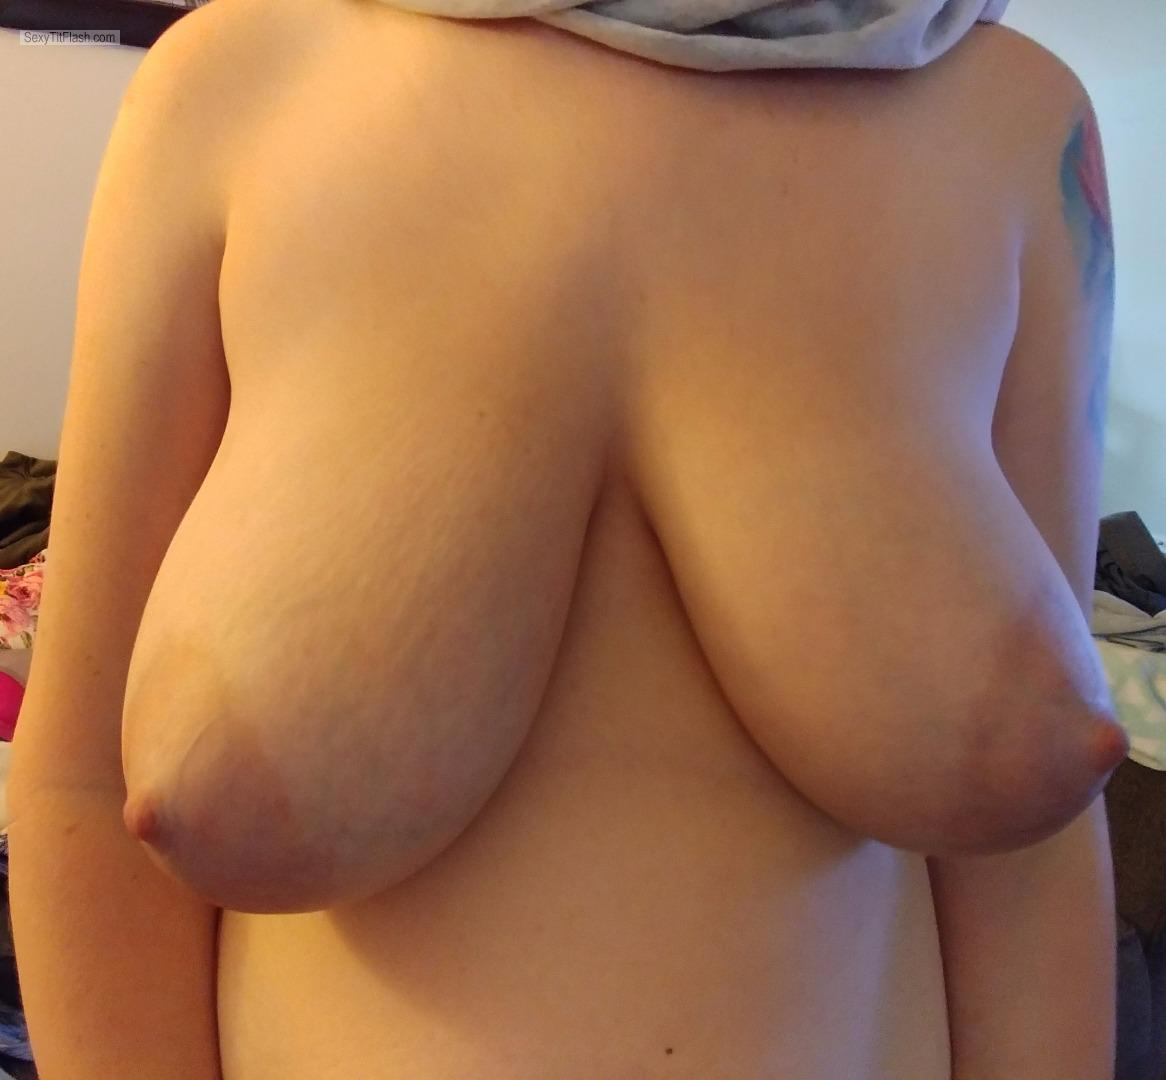 Tit Flash: Wife's Big Tits - Milfymomma from United States